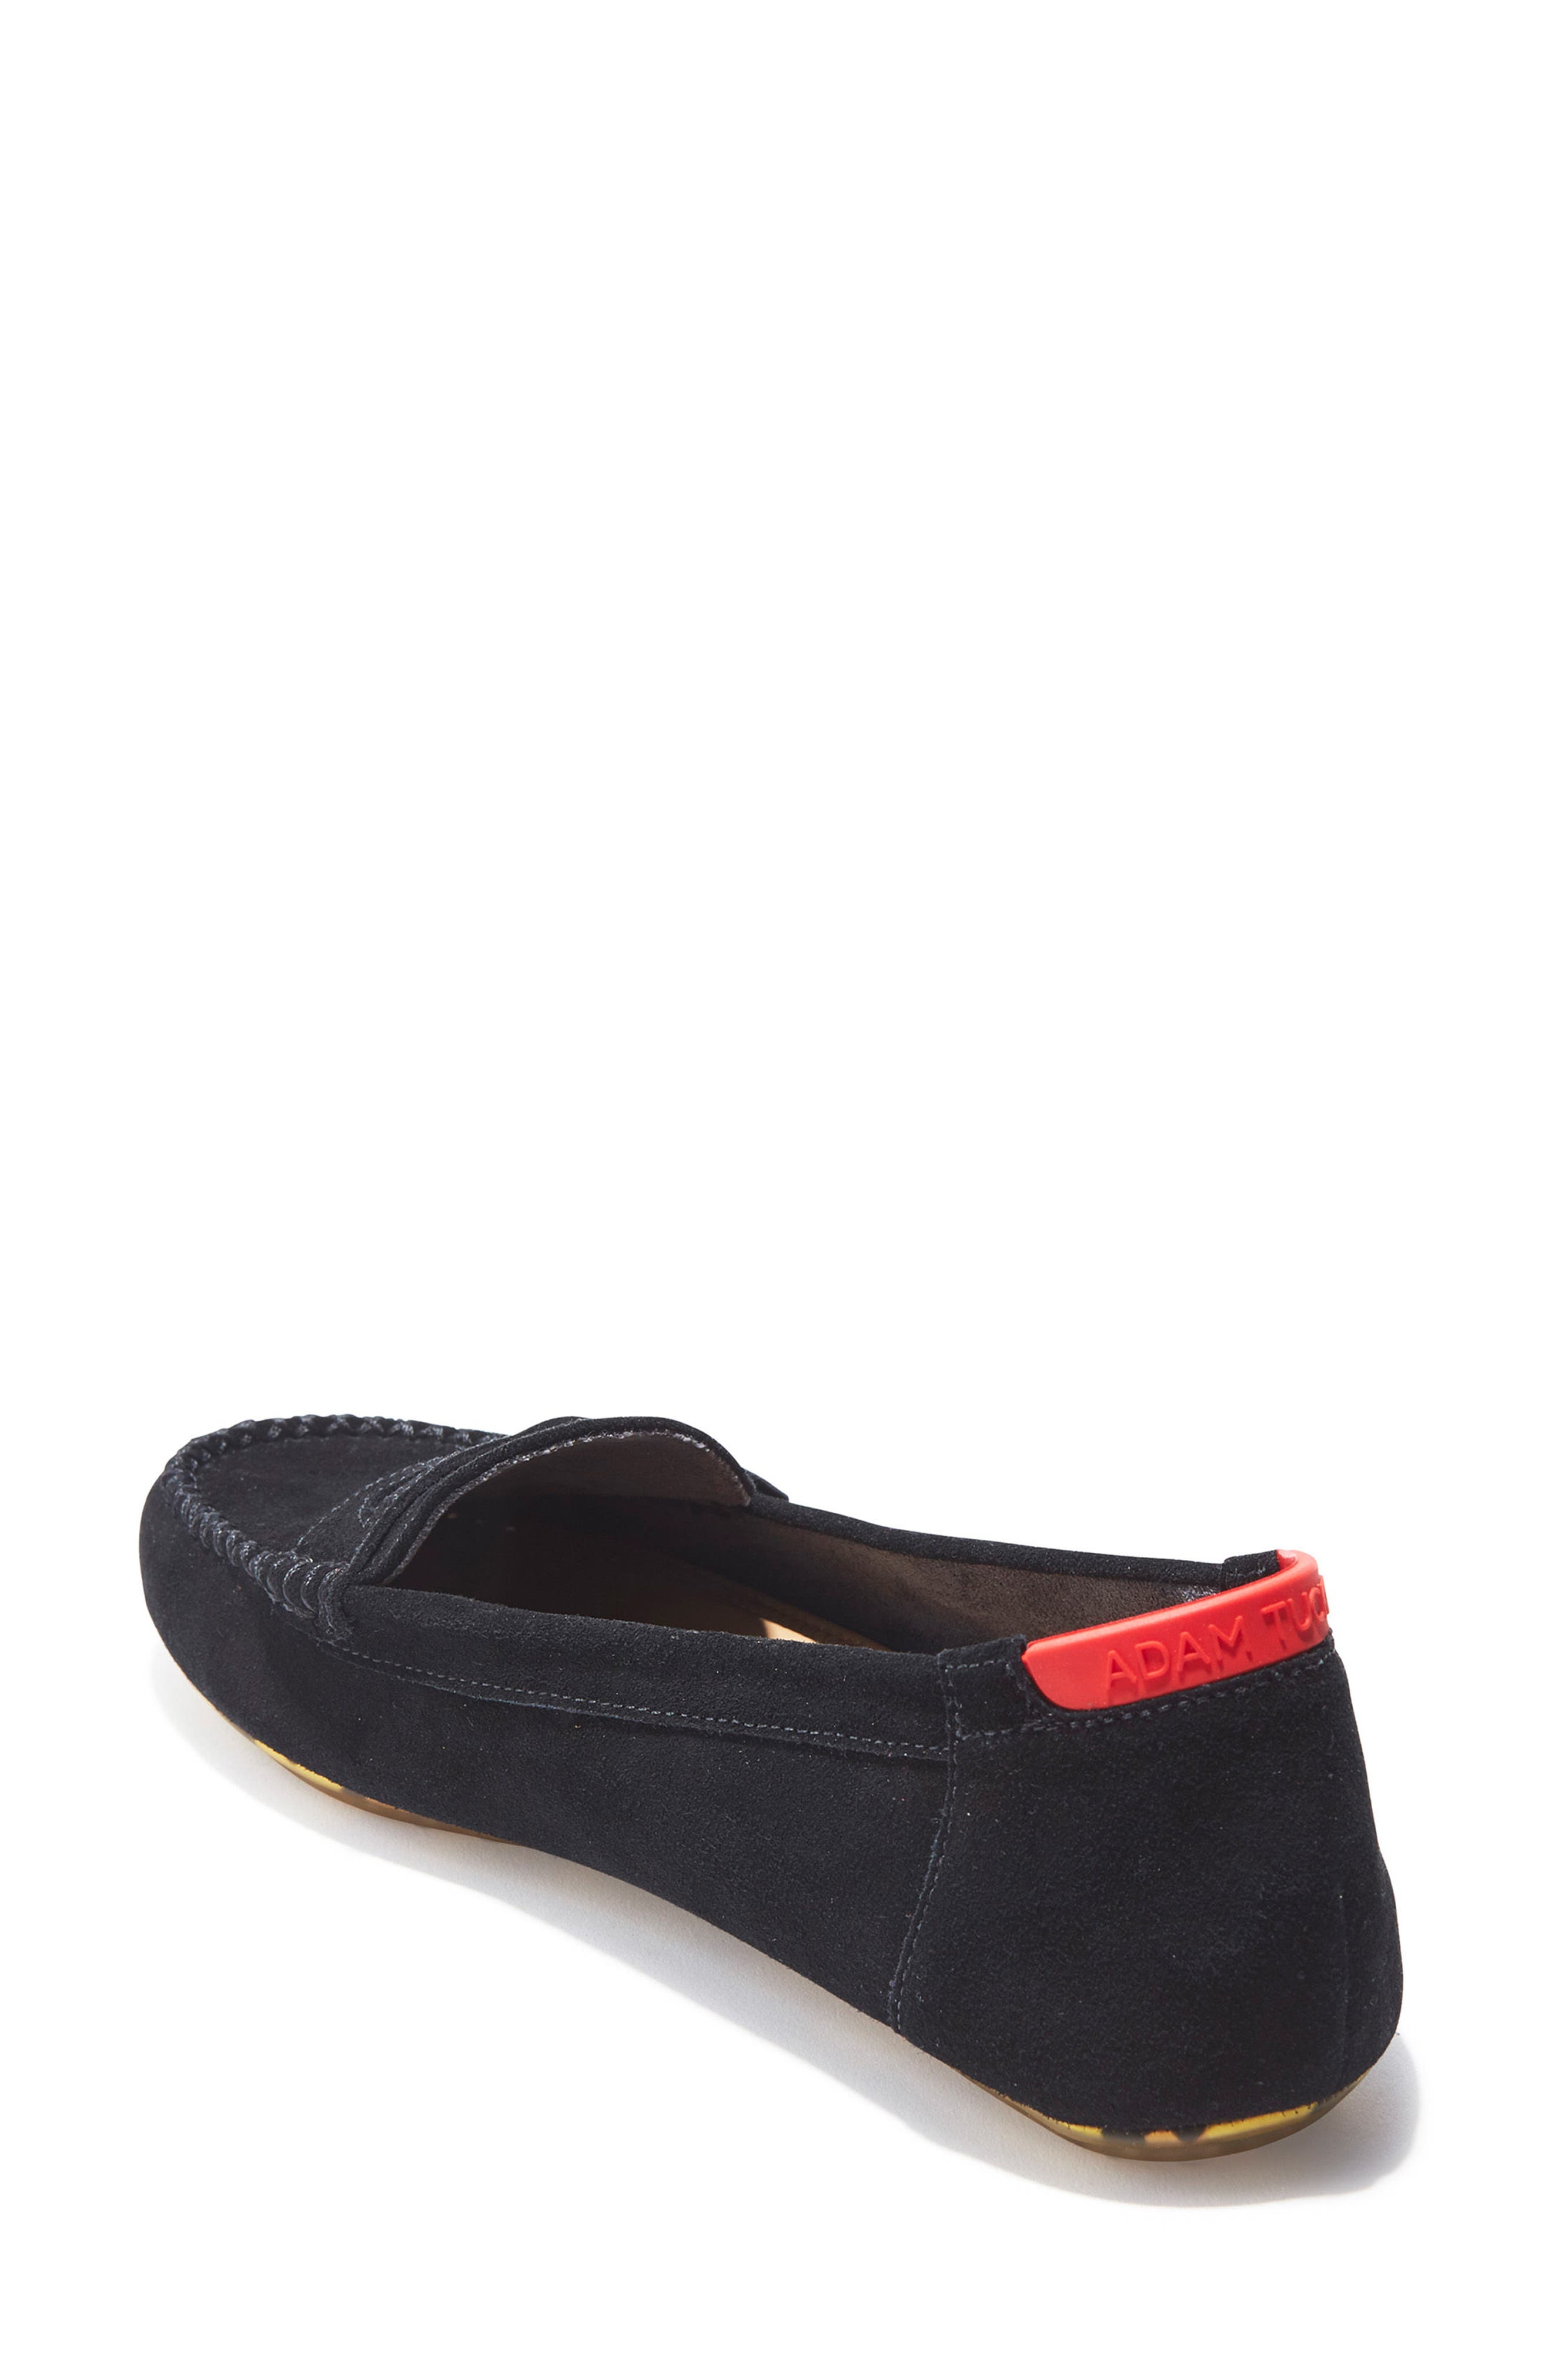 Alternate Image 3  - Adam Tucker Kami Loafer (Women)